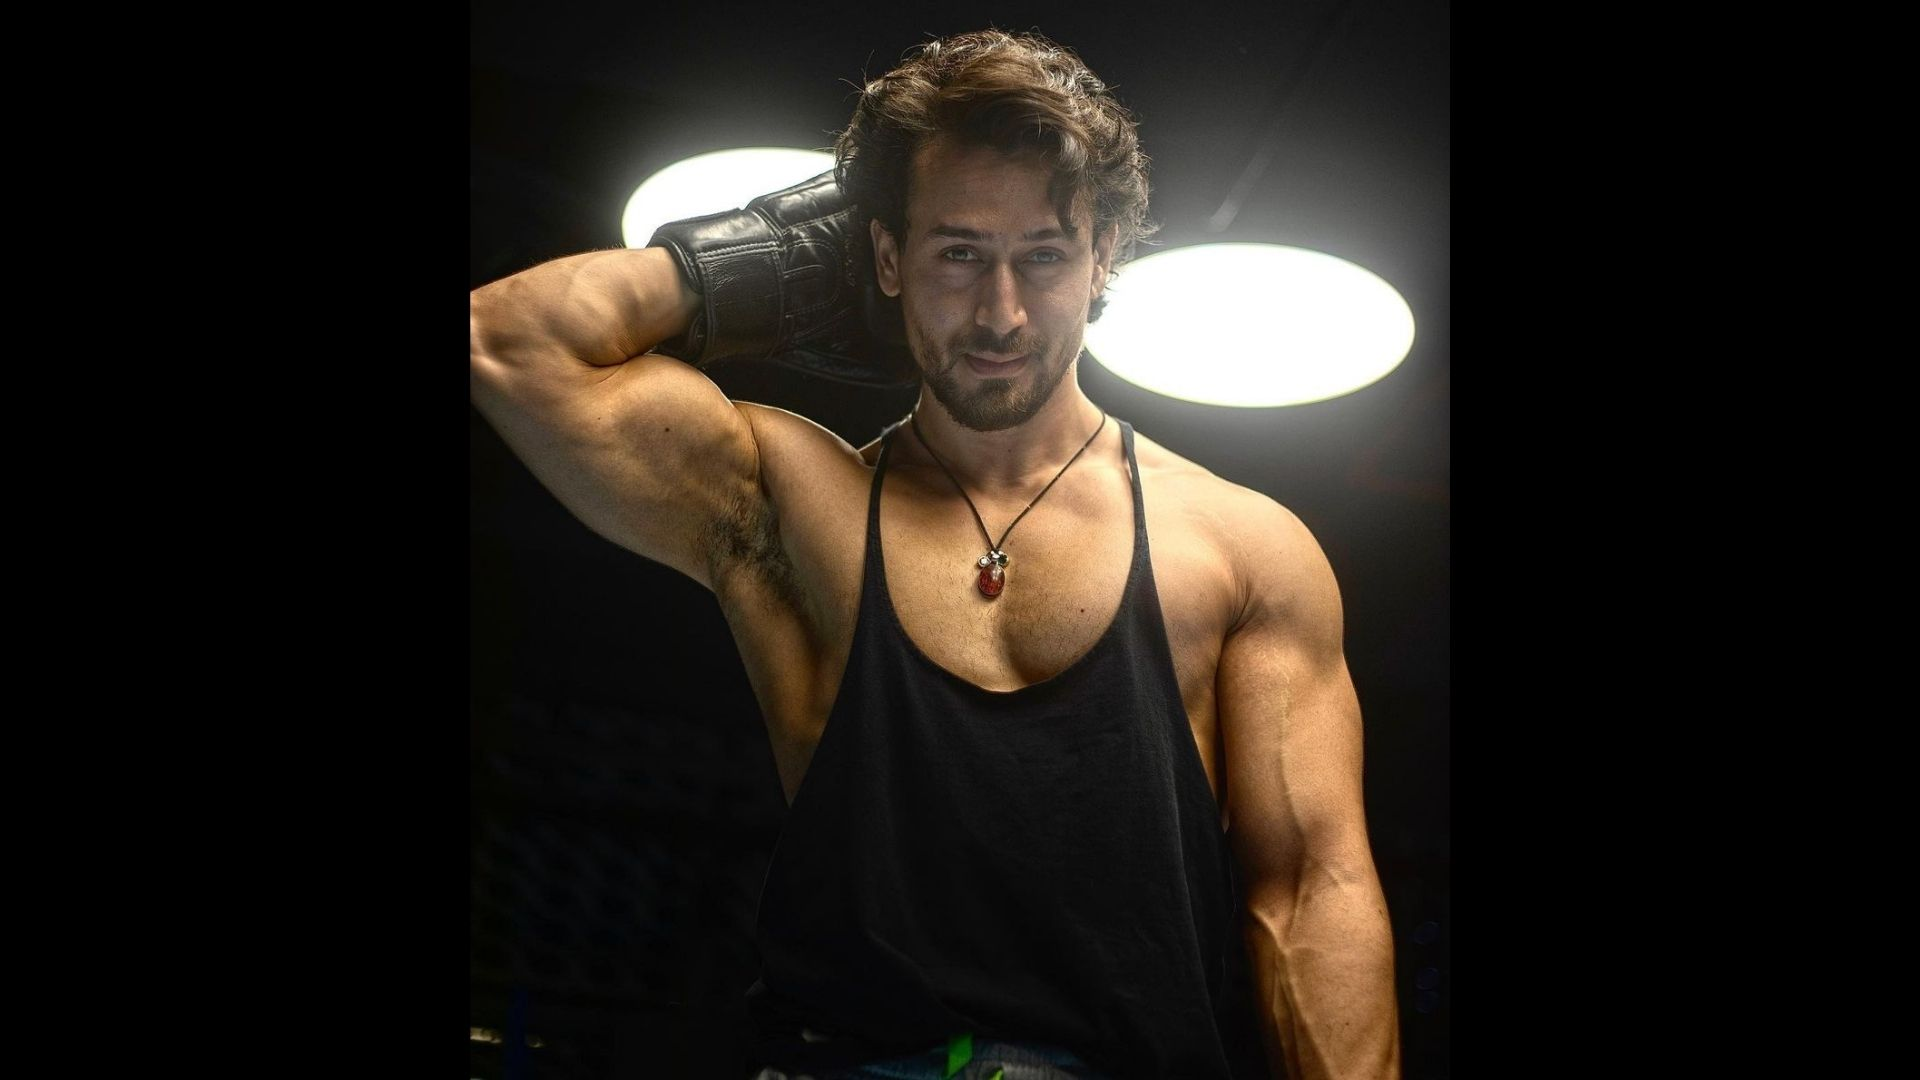 Tiger Shroff Hits A Bottle Like A Thunderstroke; Leaves His Fans' Jaws Dropped To The Floor